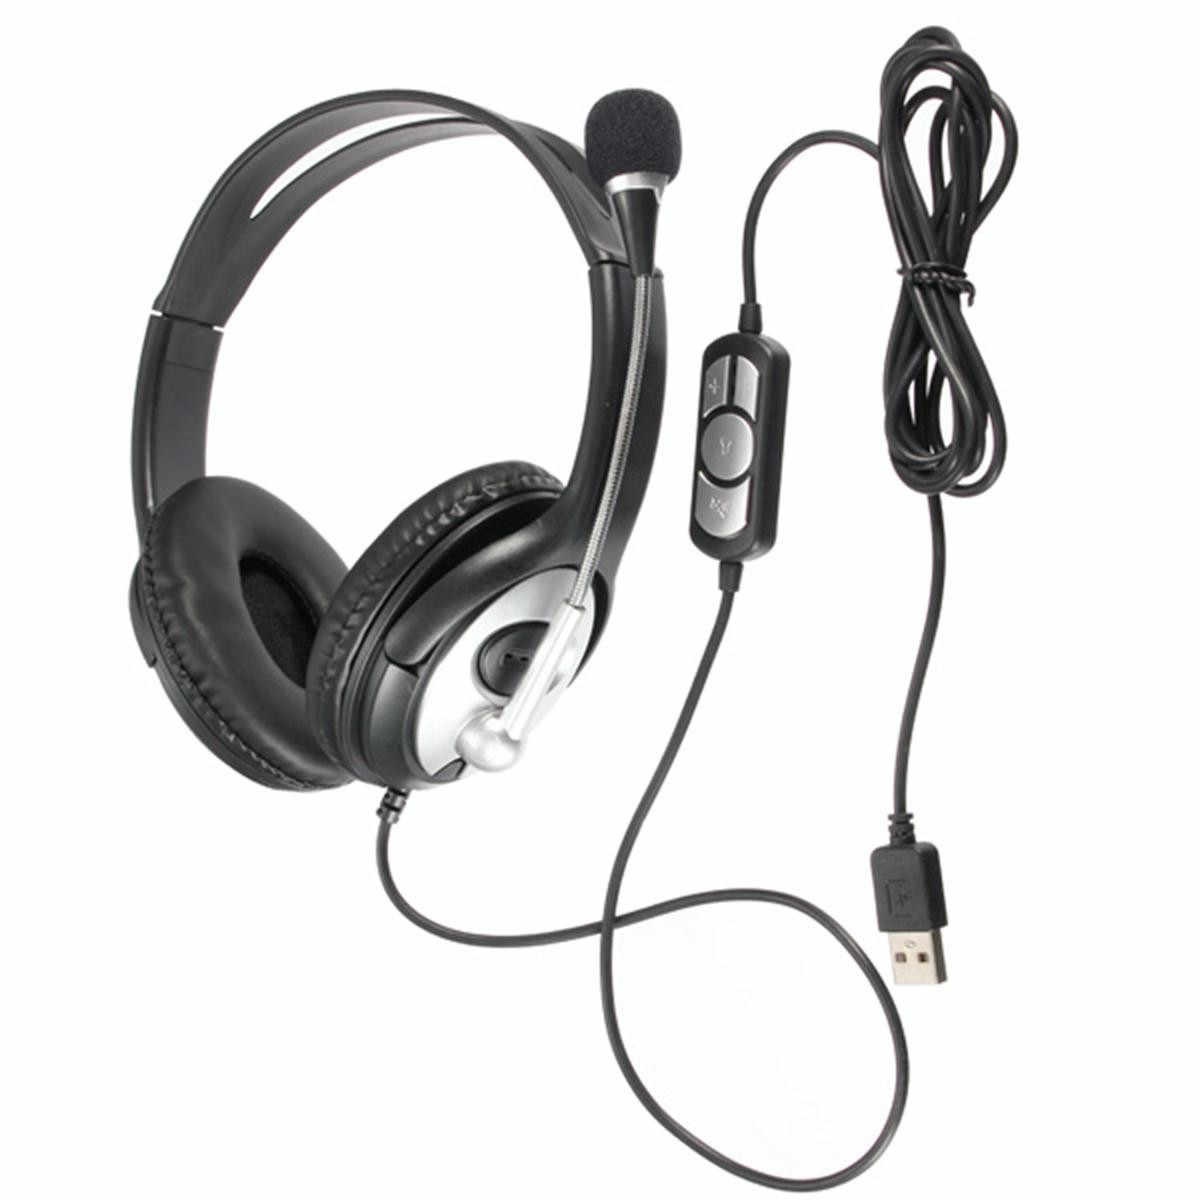 Practical USB Stereo Headphone Gaming Headset Earphone with Microphone for PC Laptop Notebook Music Gift